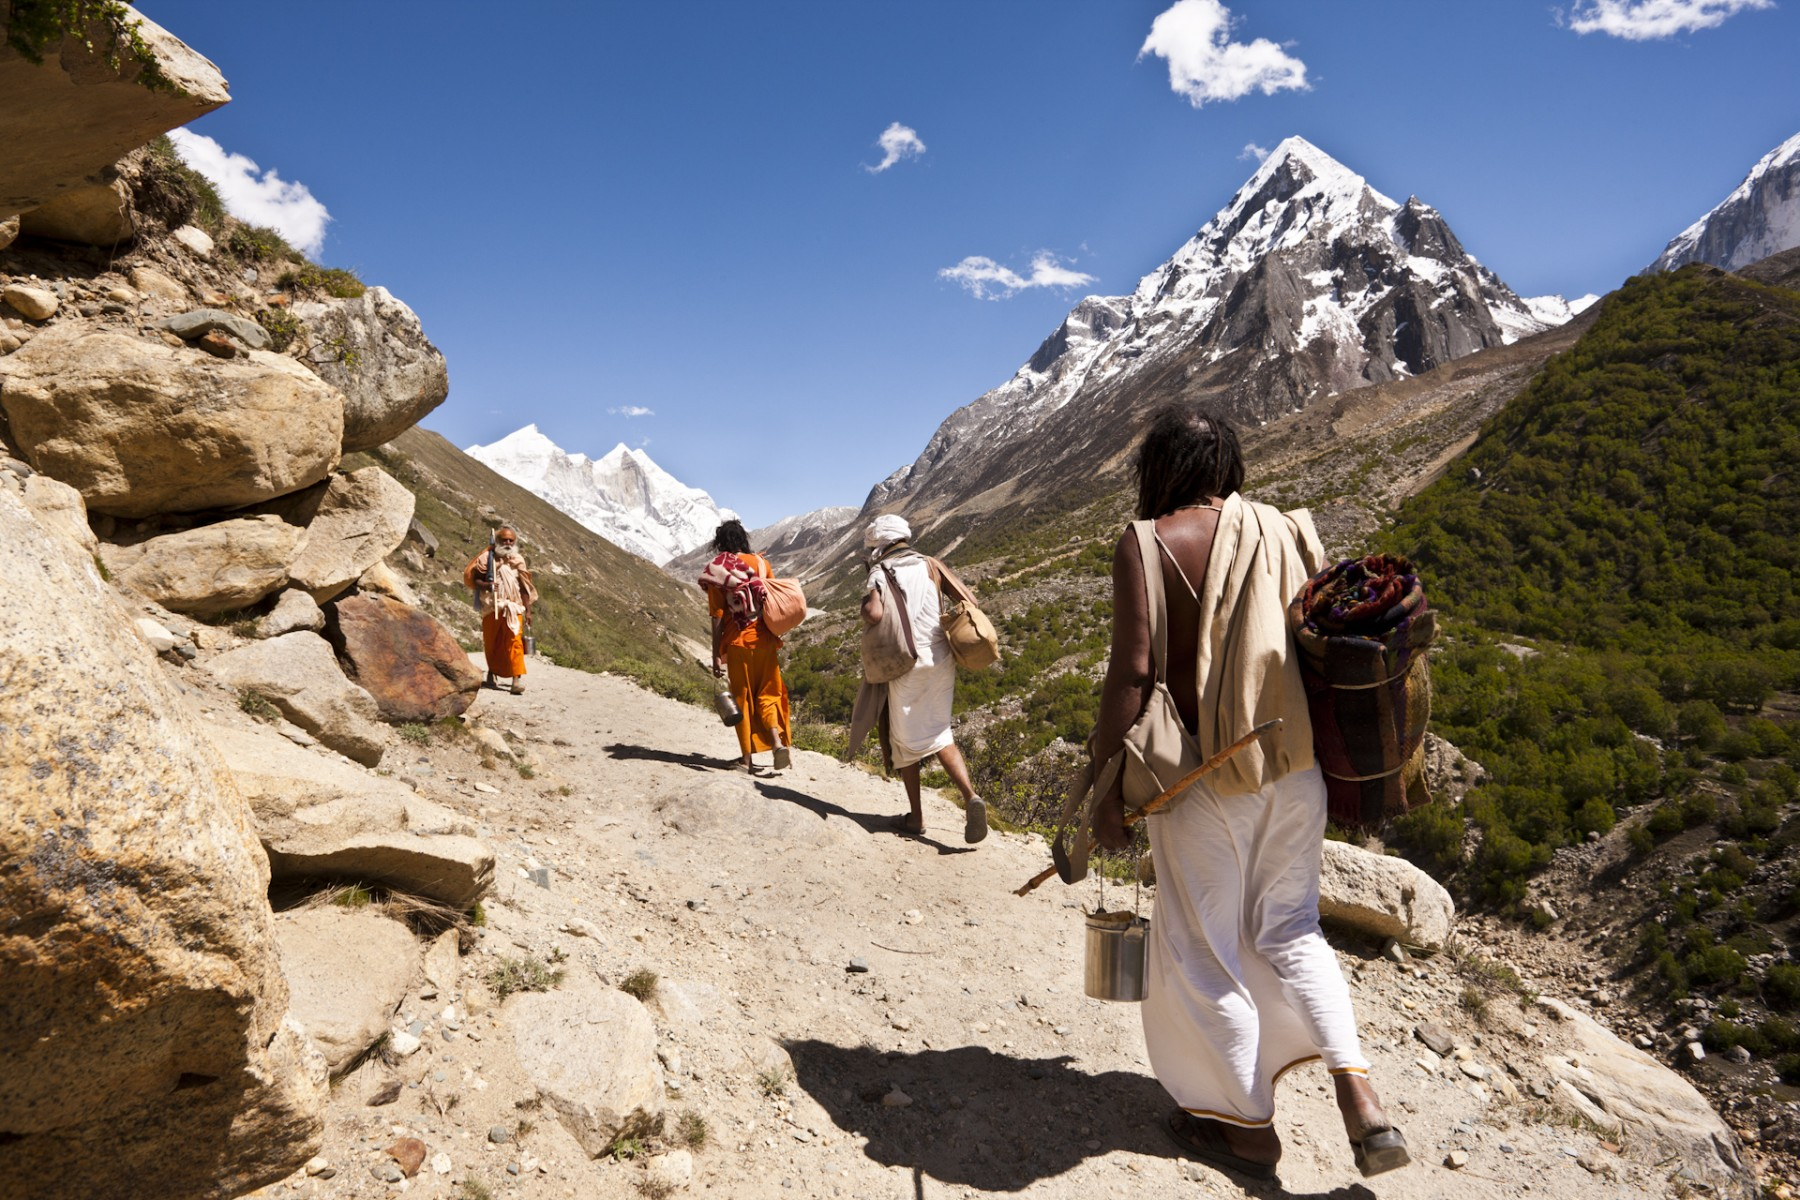 A group of Vaishnavite sadhus on the path to Gaumukh with the Bhagirathi peaks in the distance.